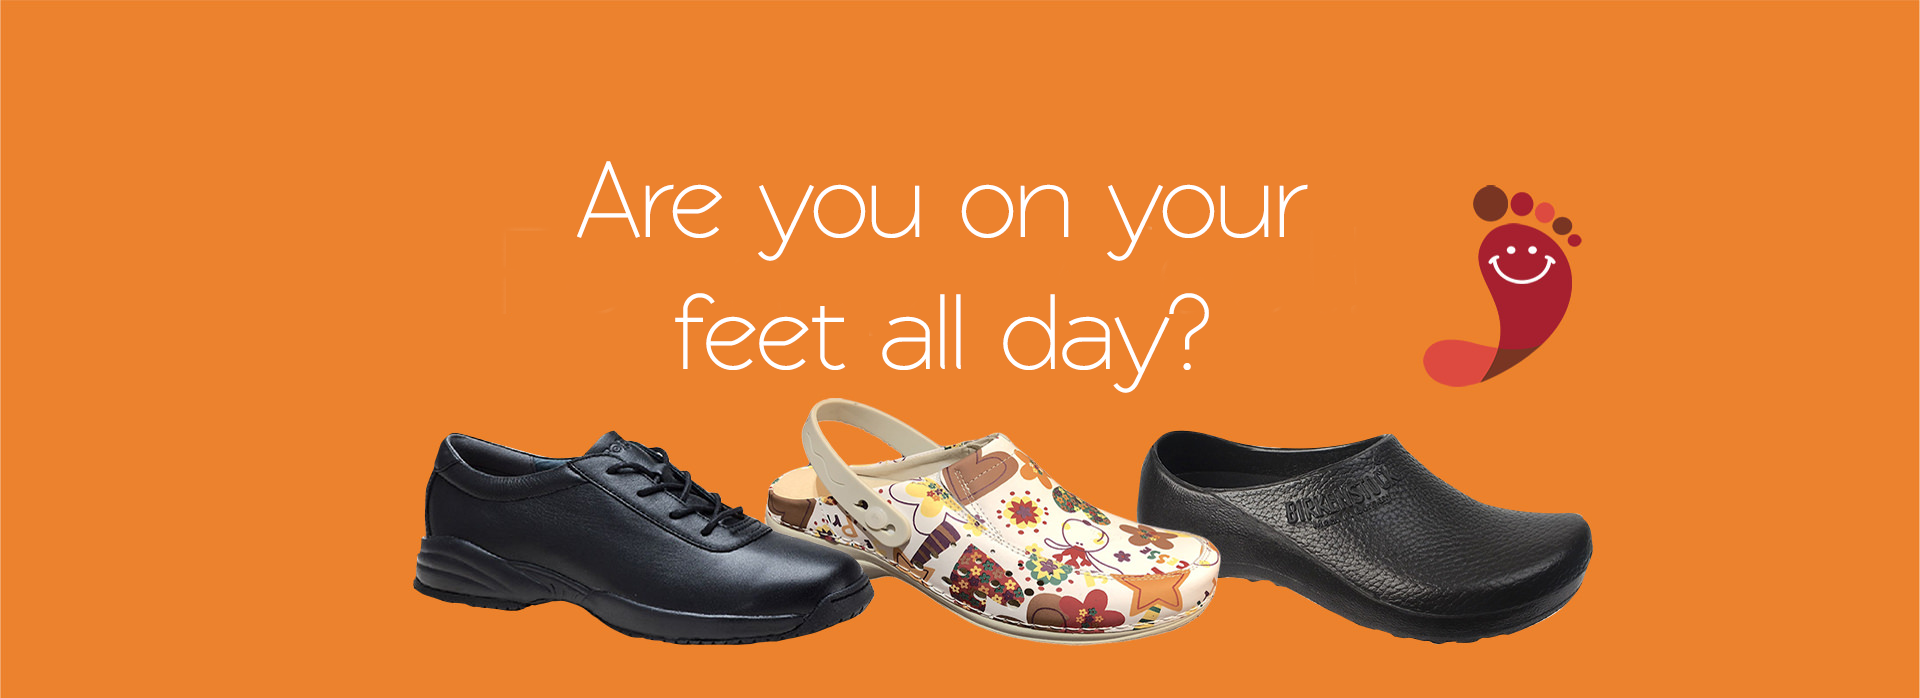 Comfort Shoes Direct - Are you on your feet all day?